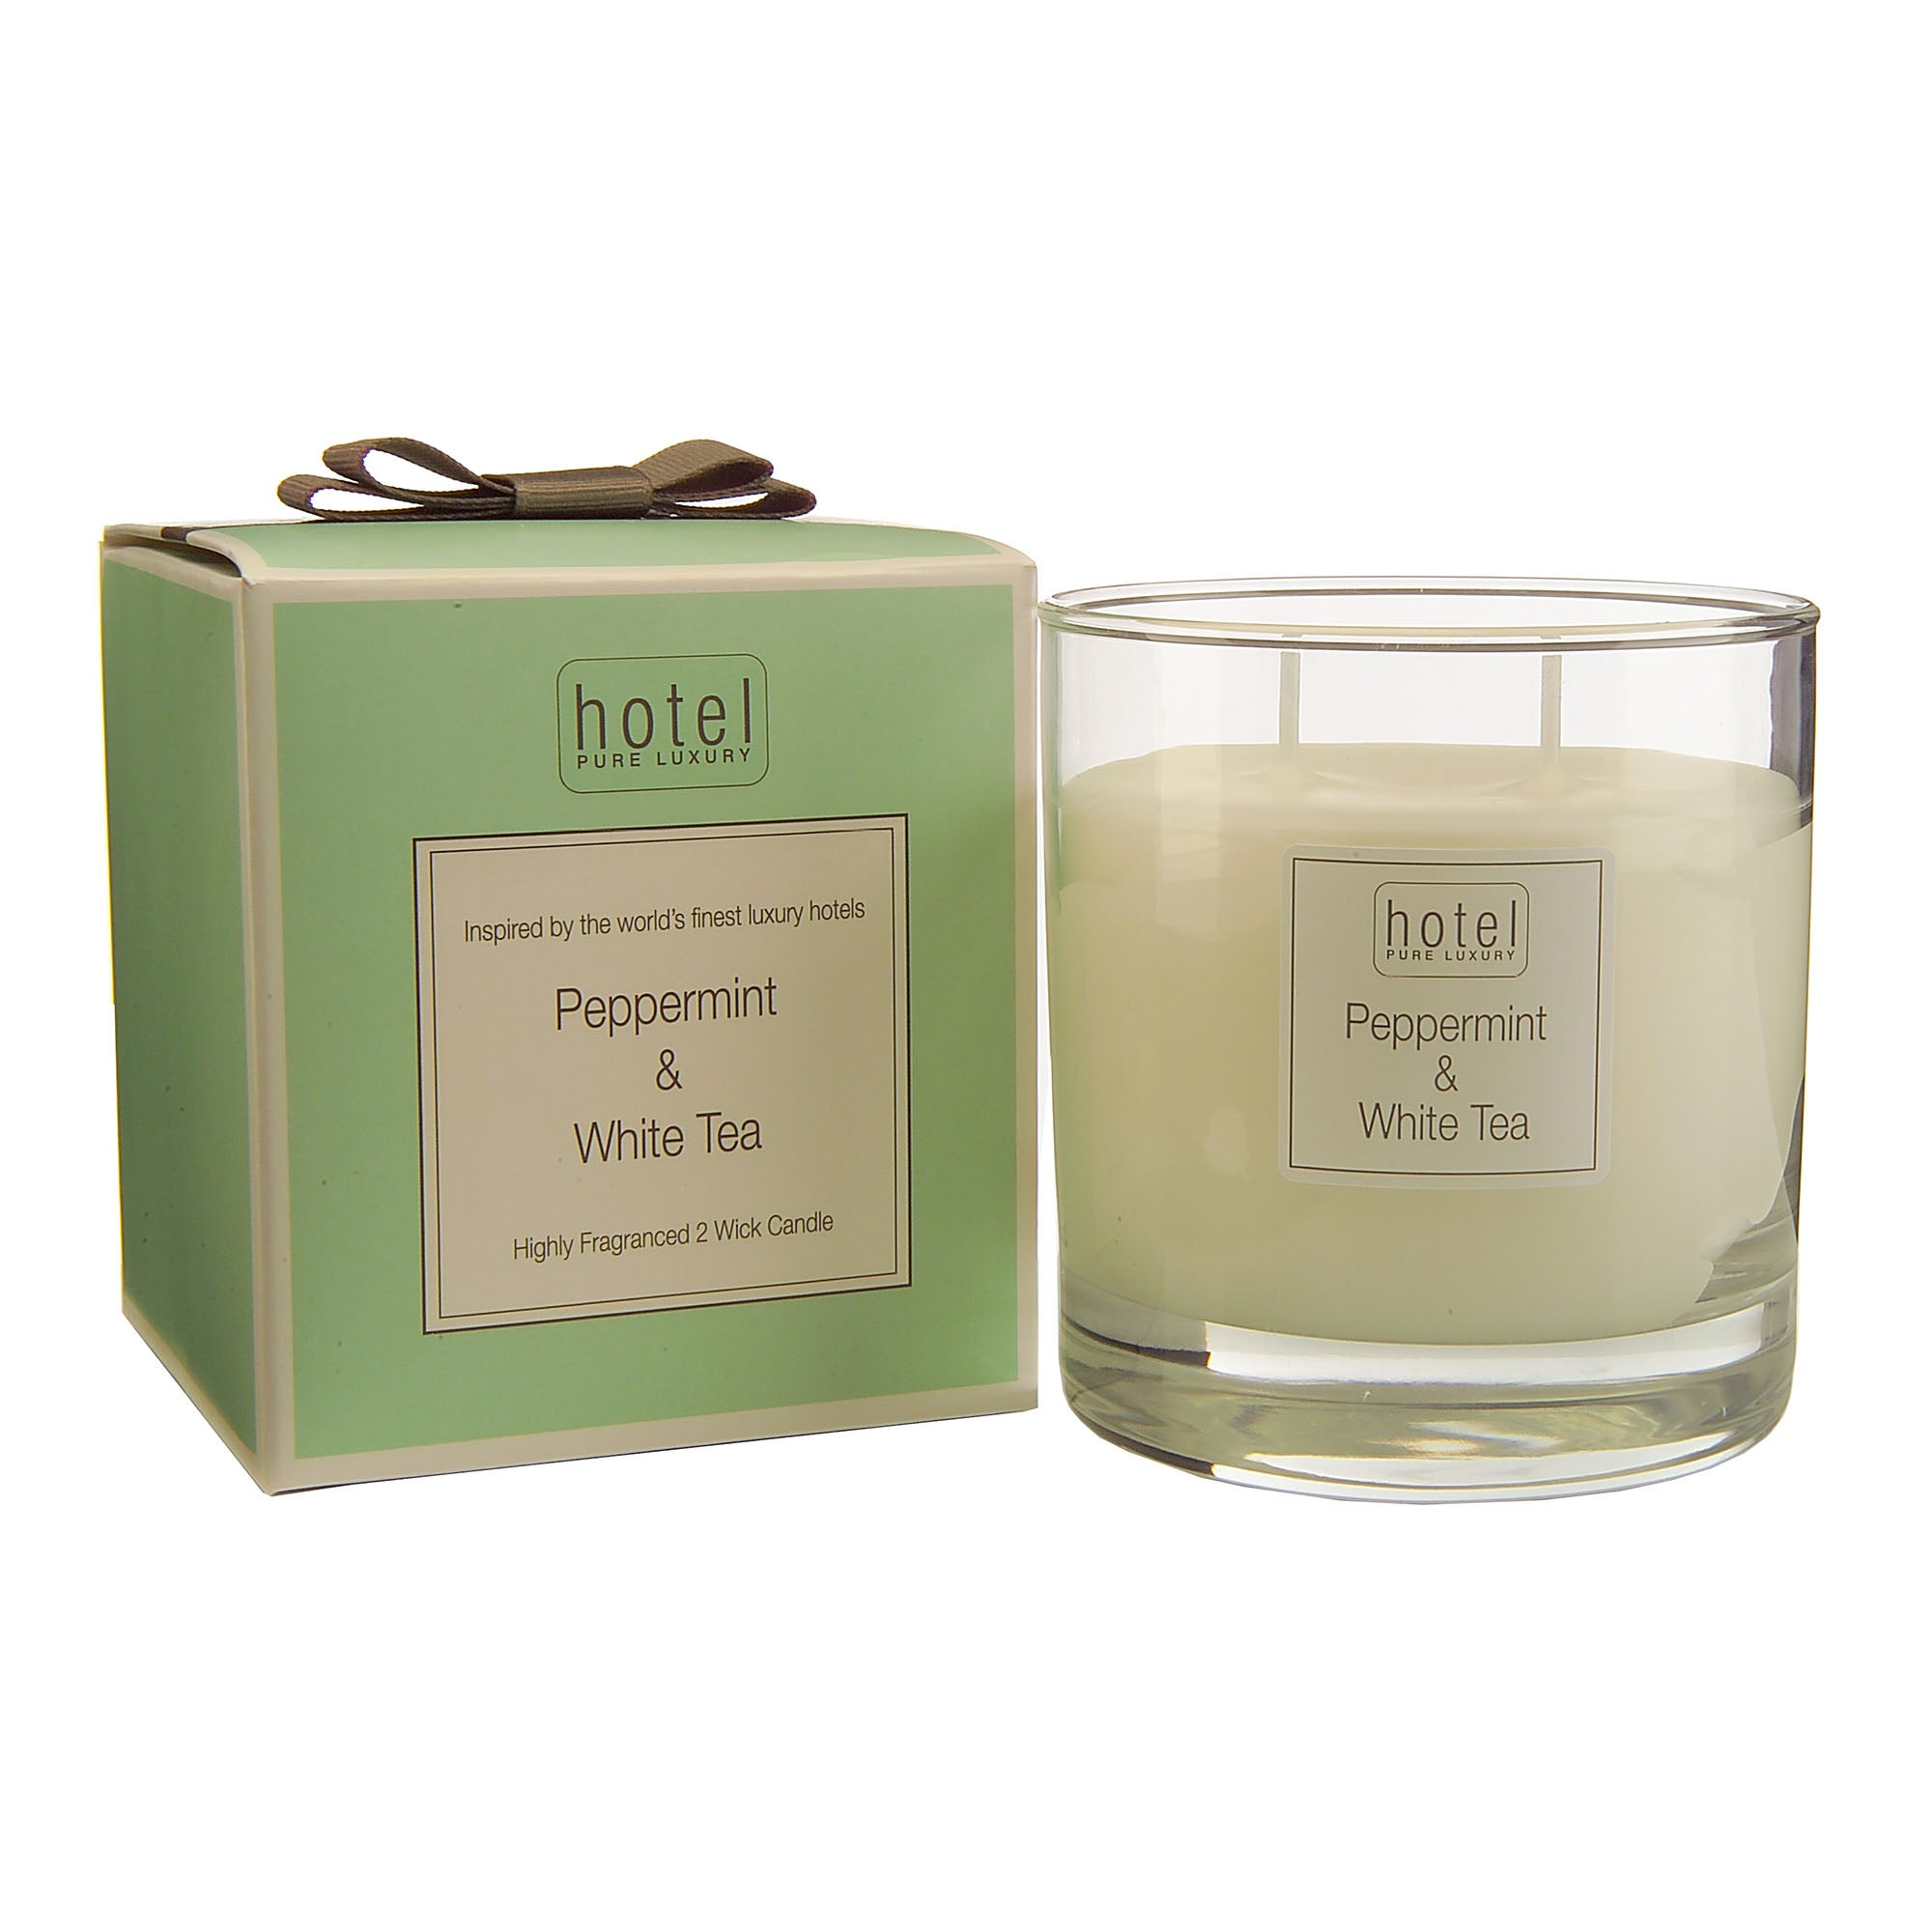 Hotel Peppermint and White Tea 2 Wick Glass Candle